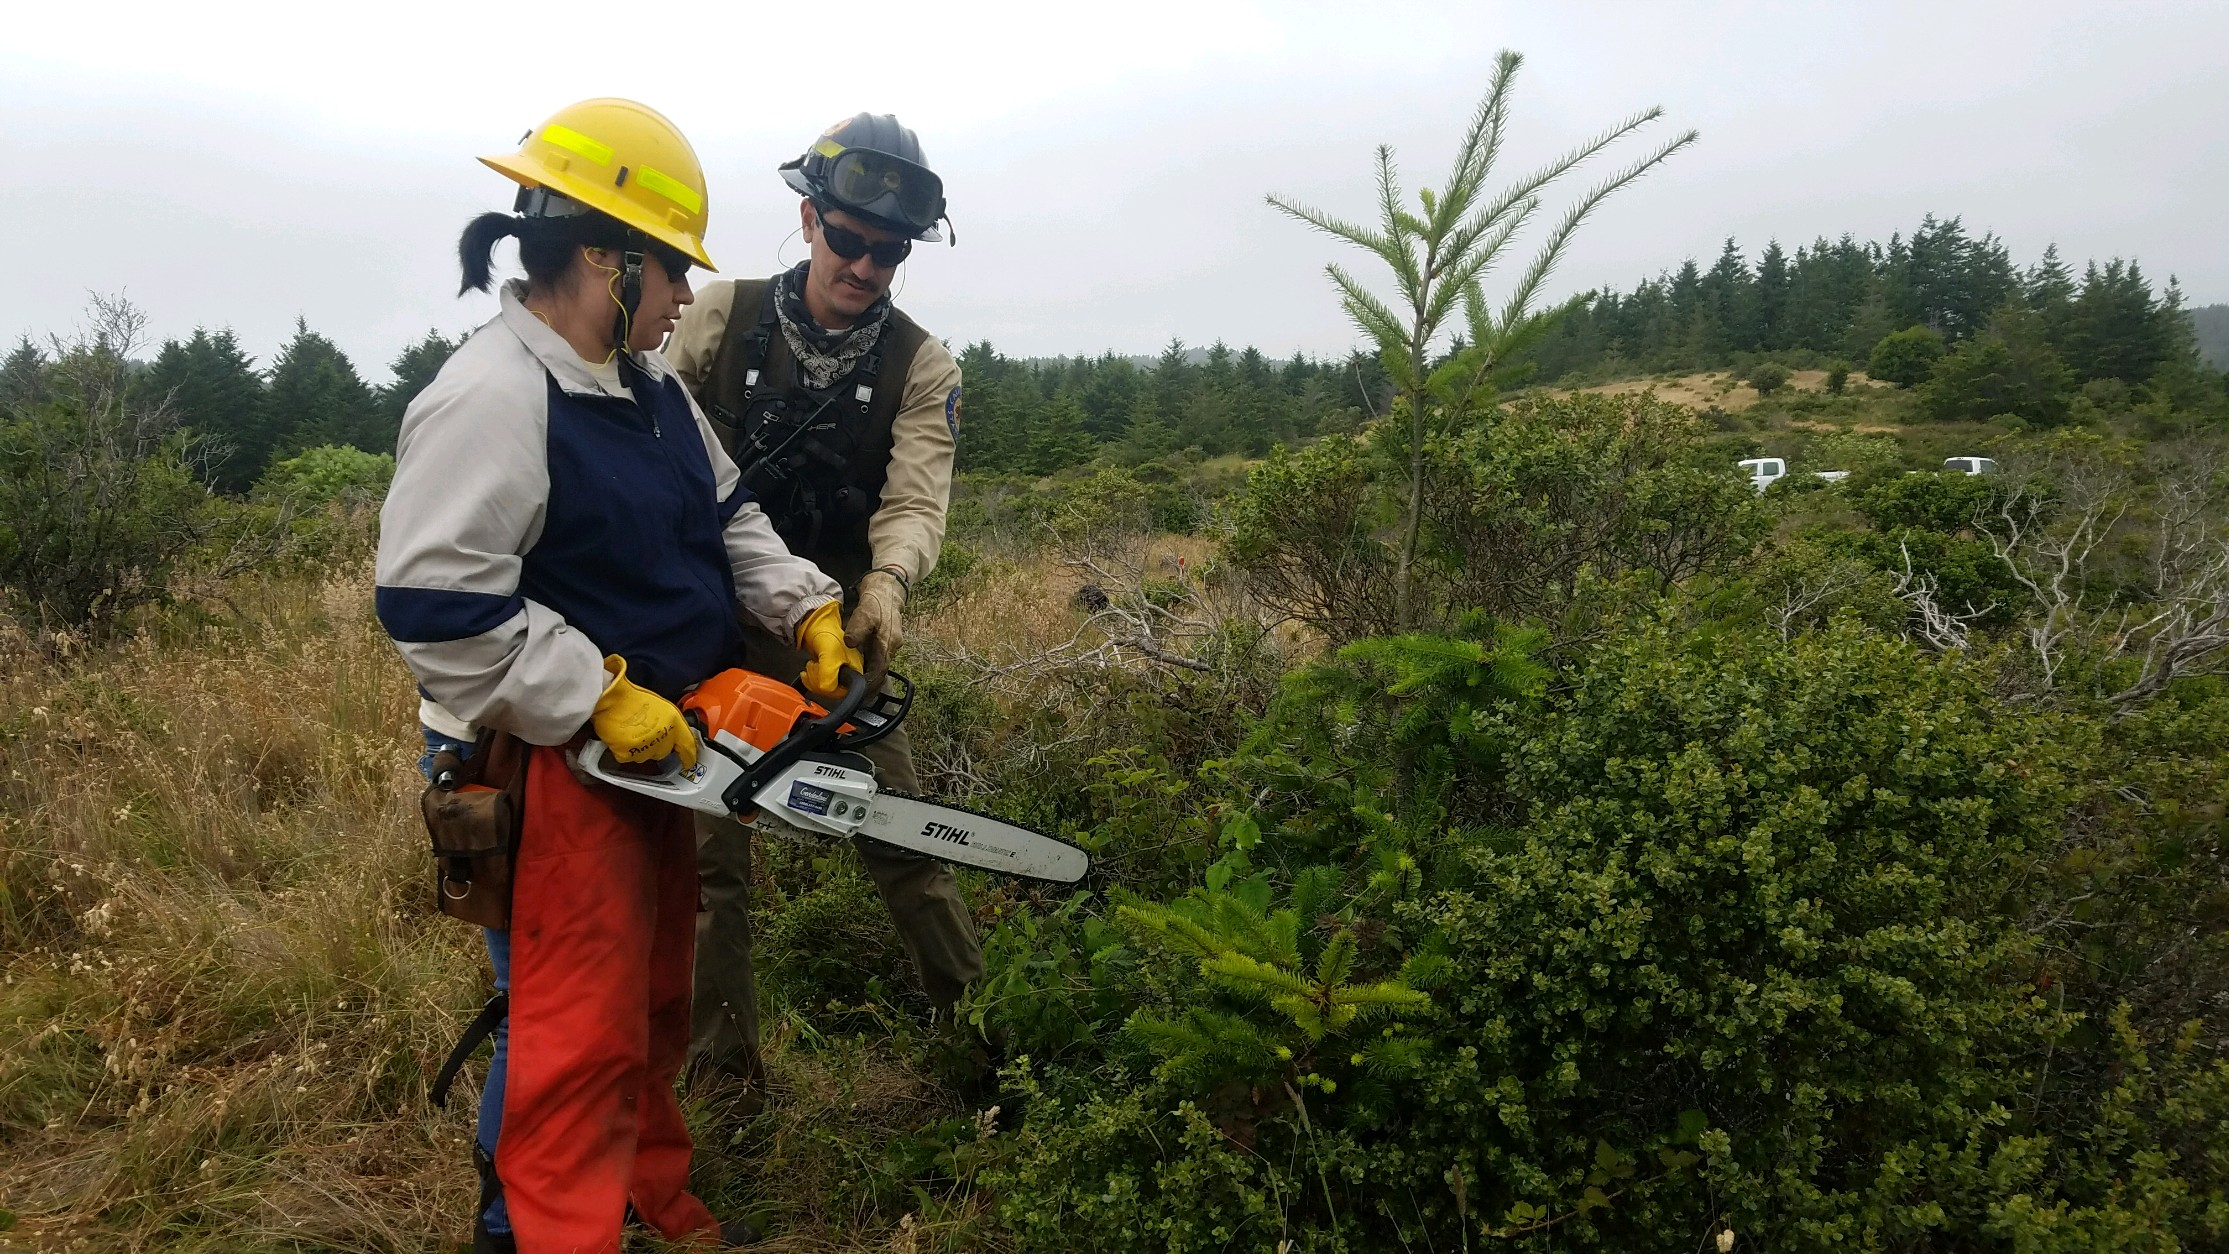 California State Parks staff member Juan Villarino trains Native Steward Natalie Garcia in proper chainsaw operation. Photo courtesy Jeanette Acosta.